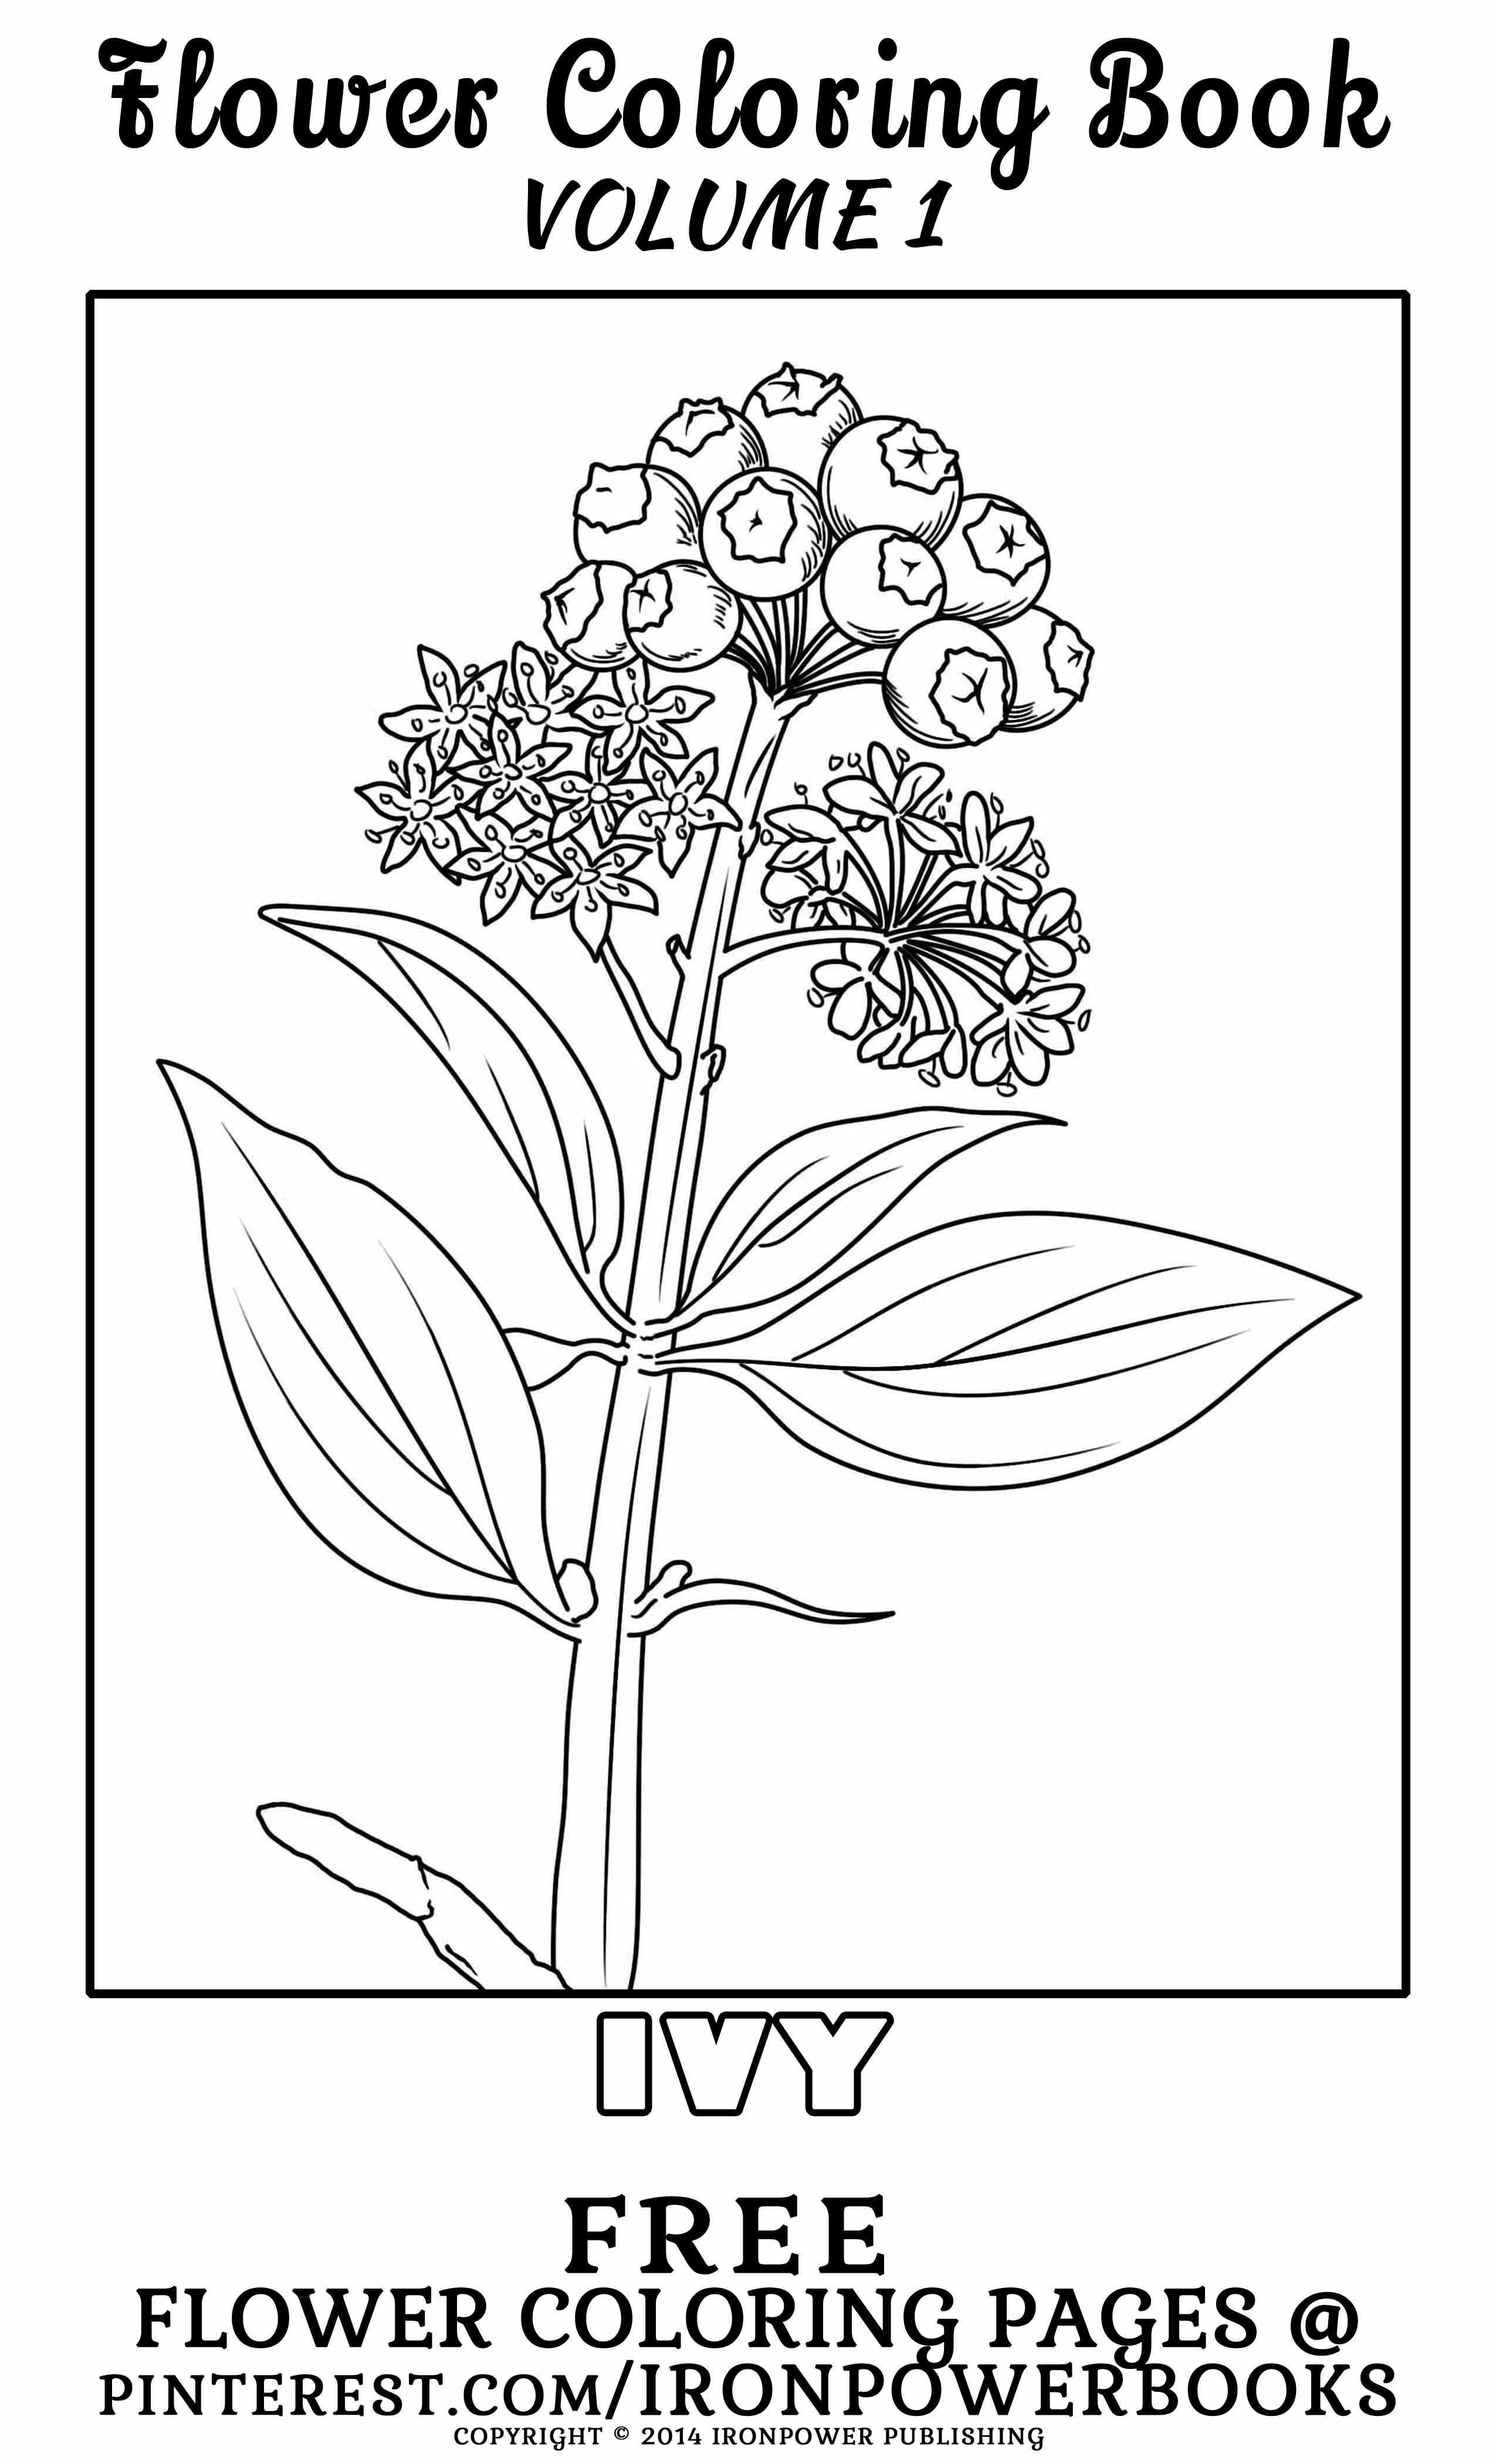 Free Flower Coloring Page From Ironpower Publishing Please Use Freely For Personal Non Commercial Fairy Coloring Pages Flower Coloring Pages Coloring Books